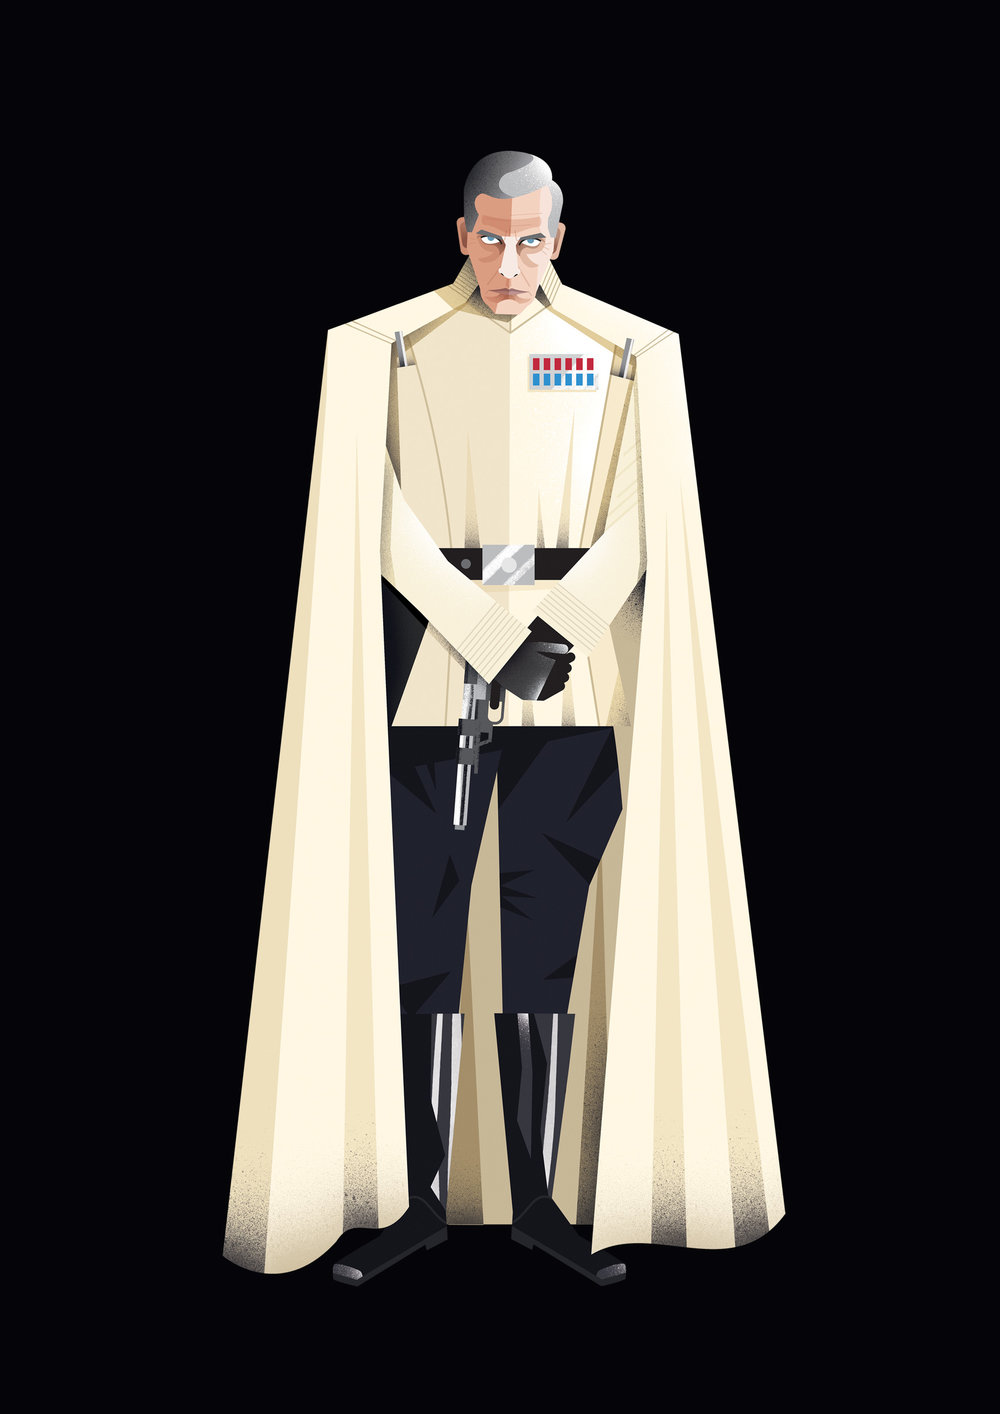 freelance illustrator dale edwin murray star wars rogue one disney complex illustration orson krennic